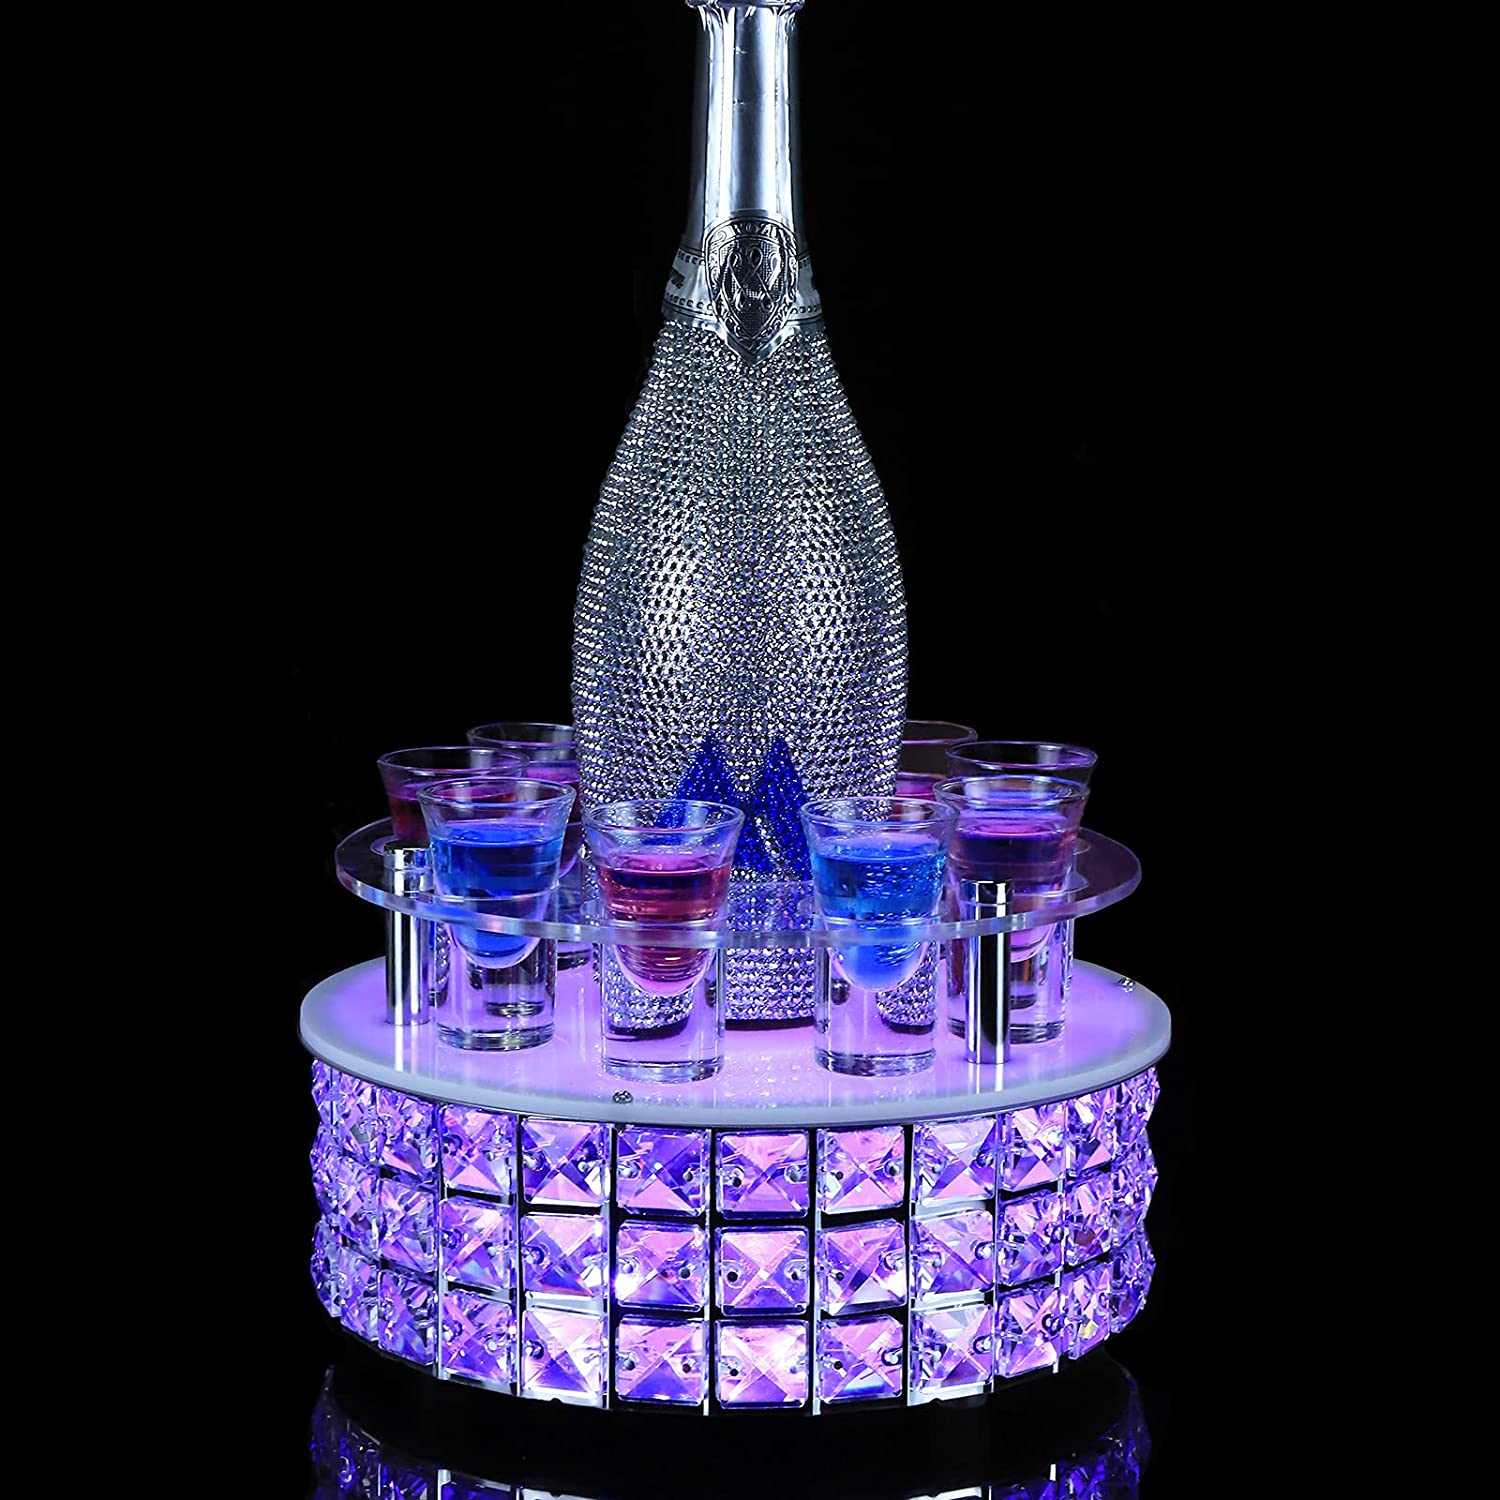 Liquor store Don't miss the campaign Display Stand LED Light Shot Bottle G Base